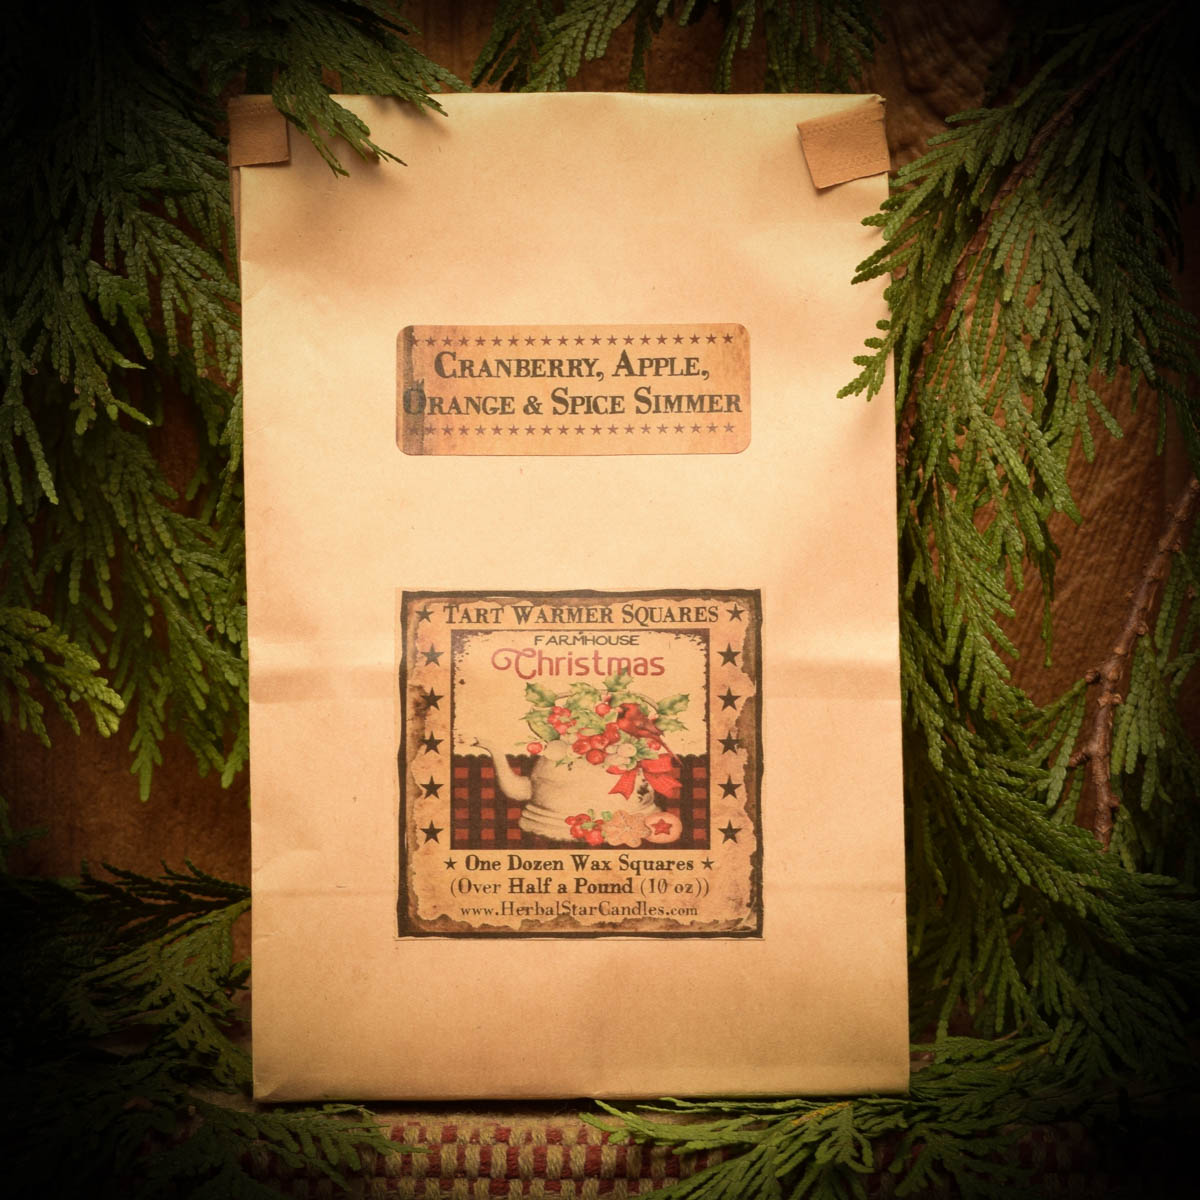 Cranberry Spice Simmer bag of 12 tarts